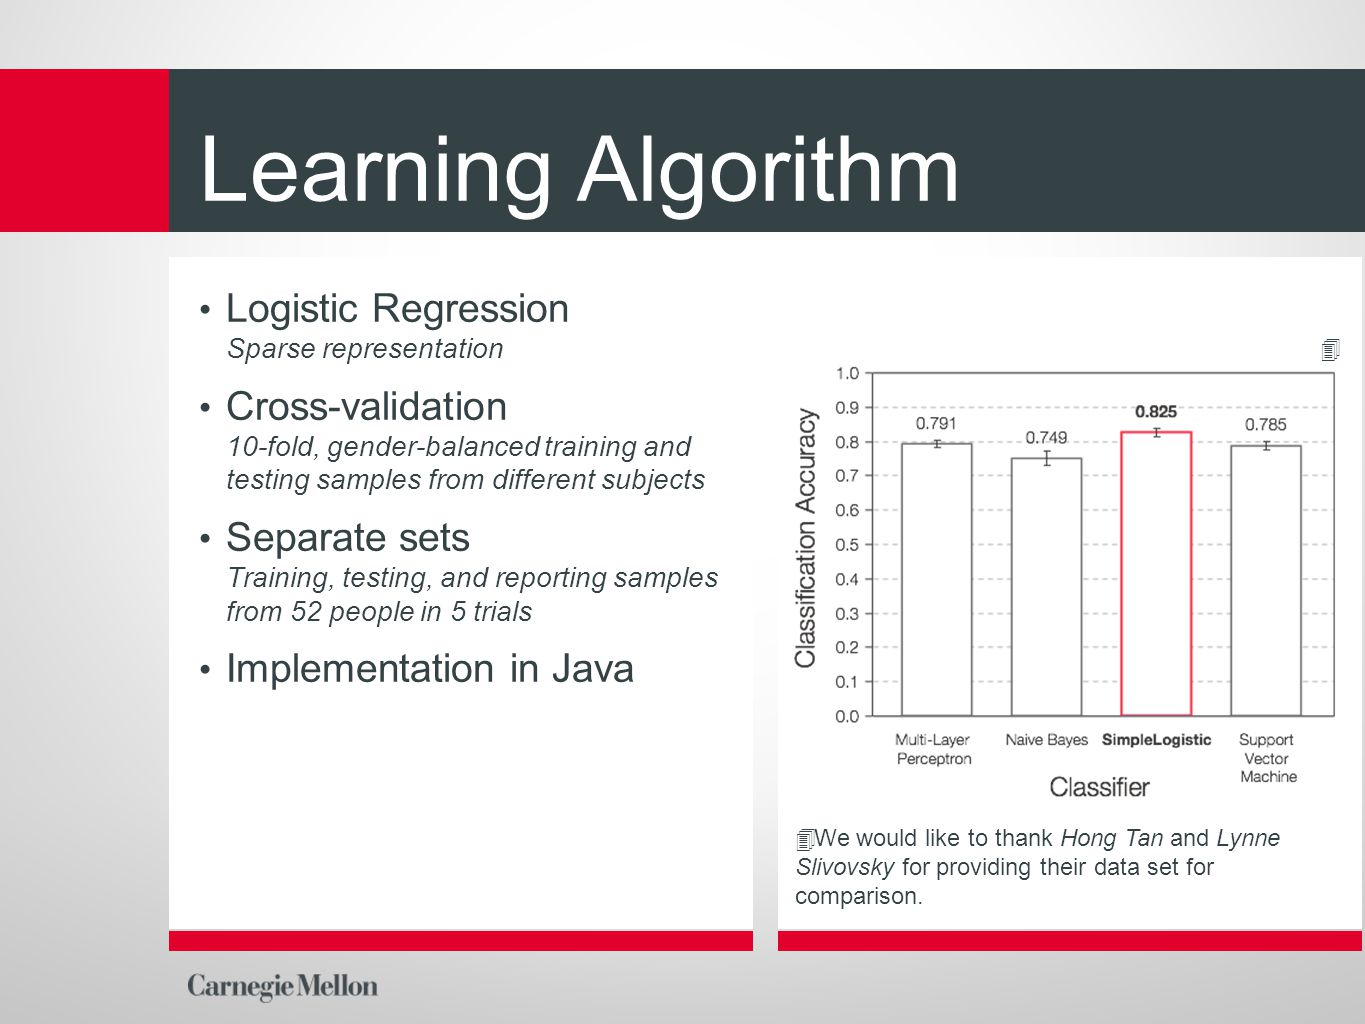 Learning Algorithm Logistic Regression Sparse representation Cross-validation 10-fold, gender-balanced training and testing samples from different subjects Separate sets Training, testing, and reporting samples from 52 people in 5 trials Implementation in Java ✴ We would like to thank Hong Tan and Lynne Slivovsky for providing their data set for comparison.